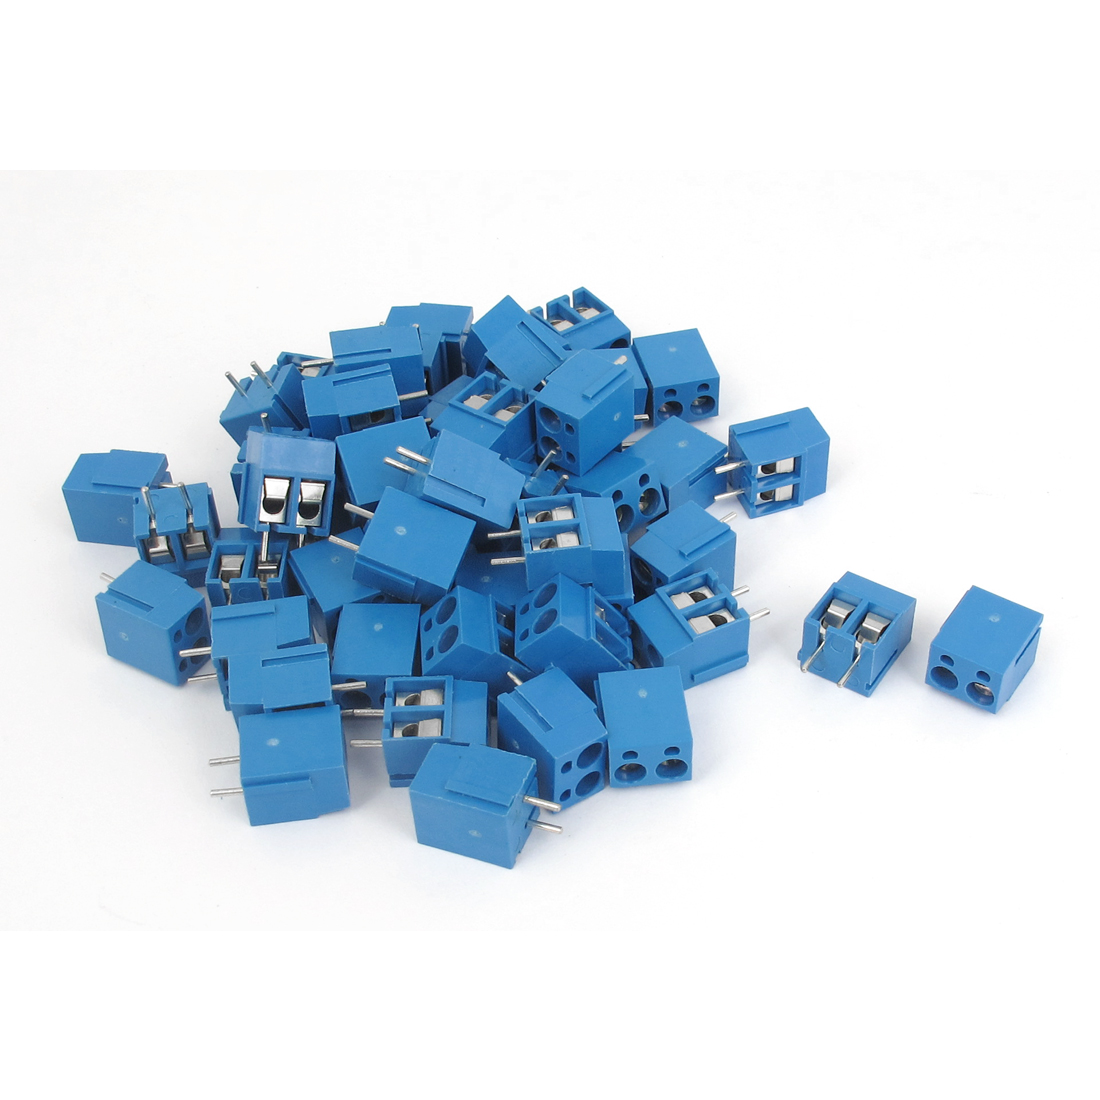 50pcs AC 300V 16A 2 Poles 5mm Spacing Pluggable PCB Screw Terminal Block for AWG14-22 Cable